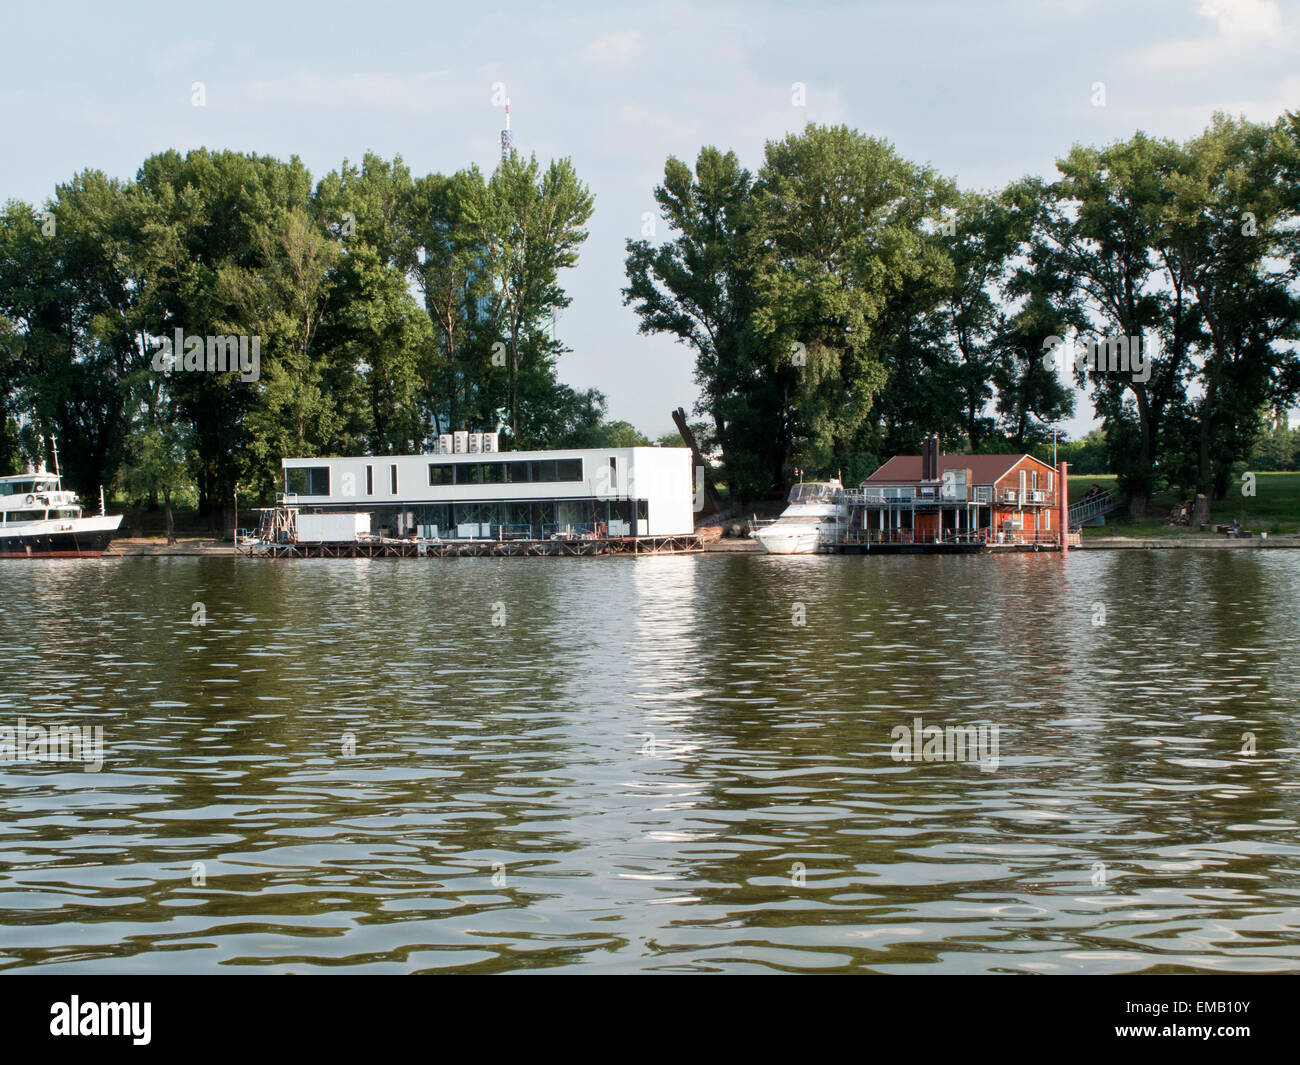 Floating private homes on the Danube close to Beograd in Serbia - Stock Image